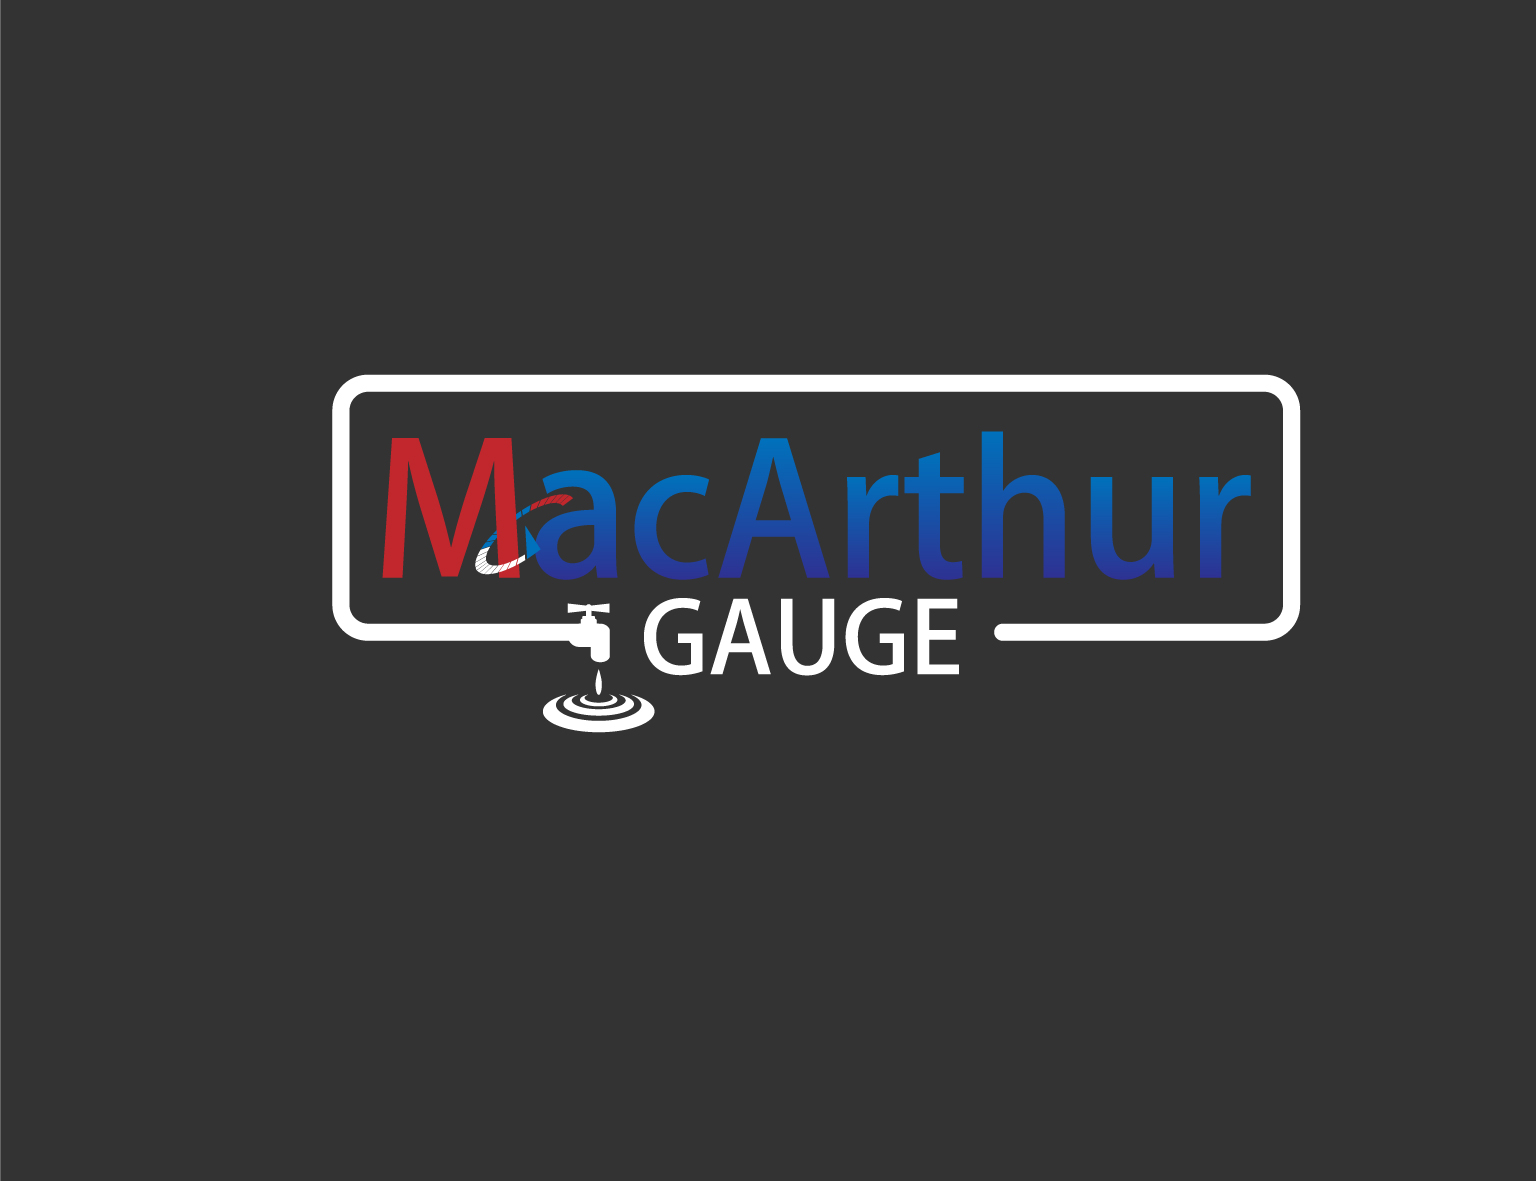 Logo Design by 3draw - Entry No. 216 in the Logo Design Contest Fun Logo Design for MacArthur Gauge.